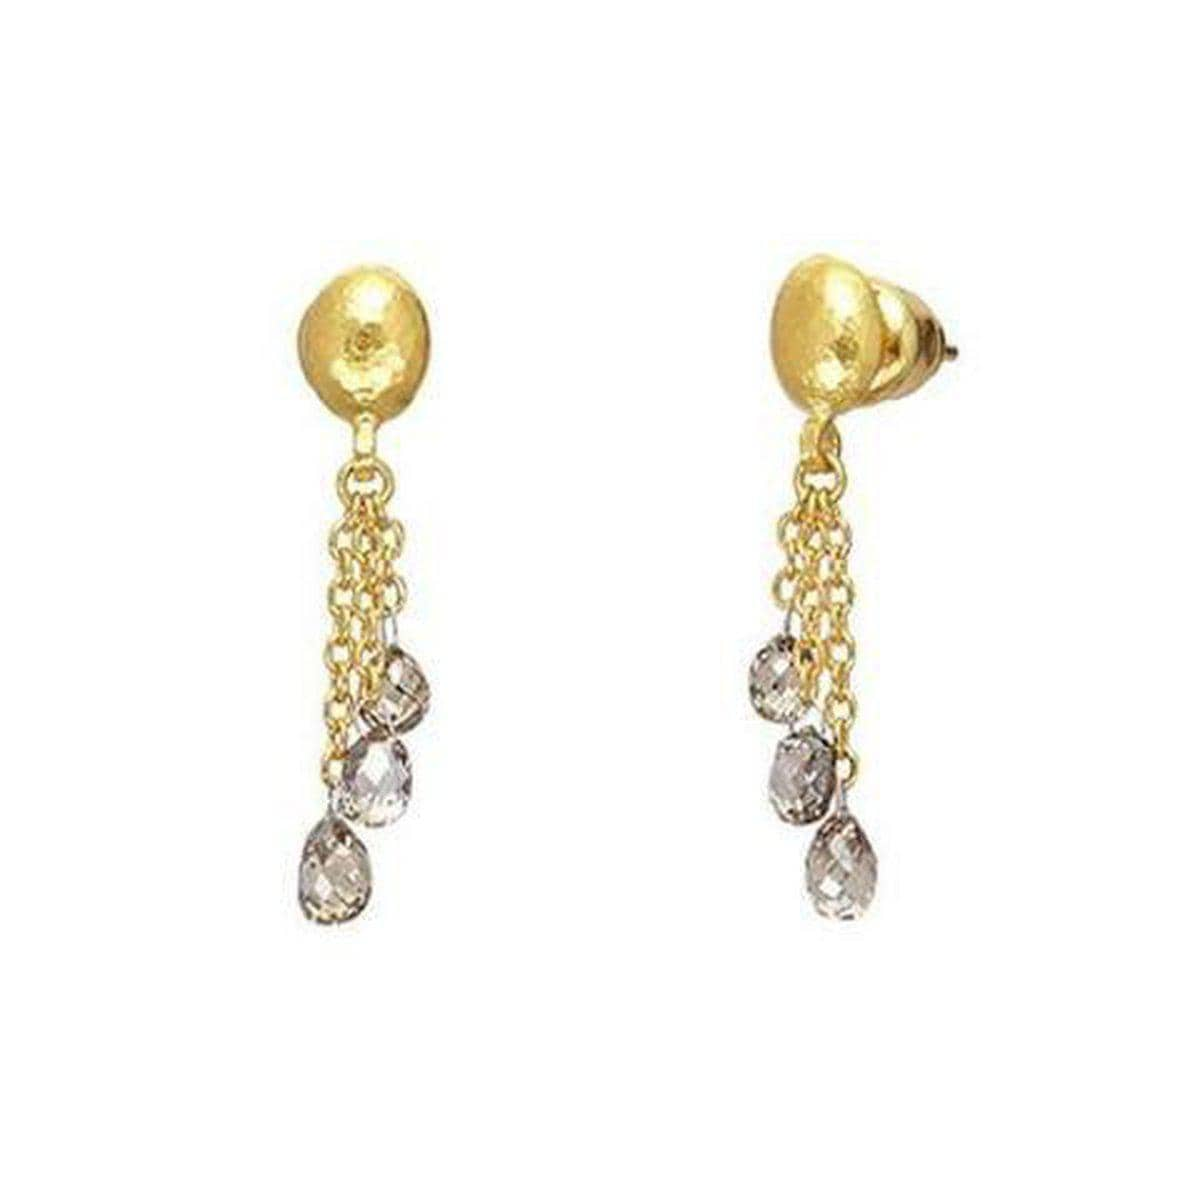 Delicate 24K Gold Diamond Earrings - E-U24198-DI-GURHAN-Renee Taylor Gallery